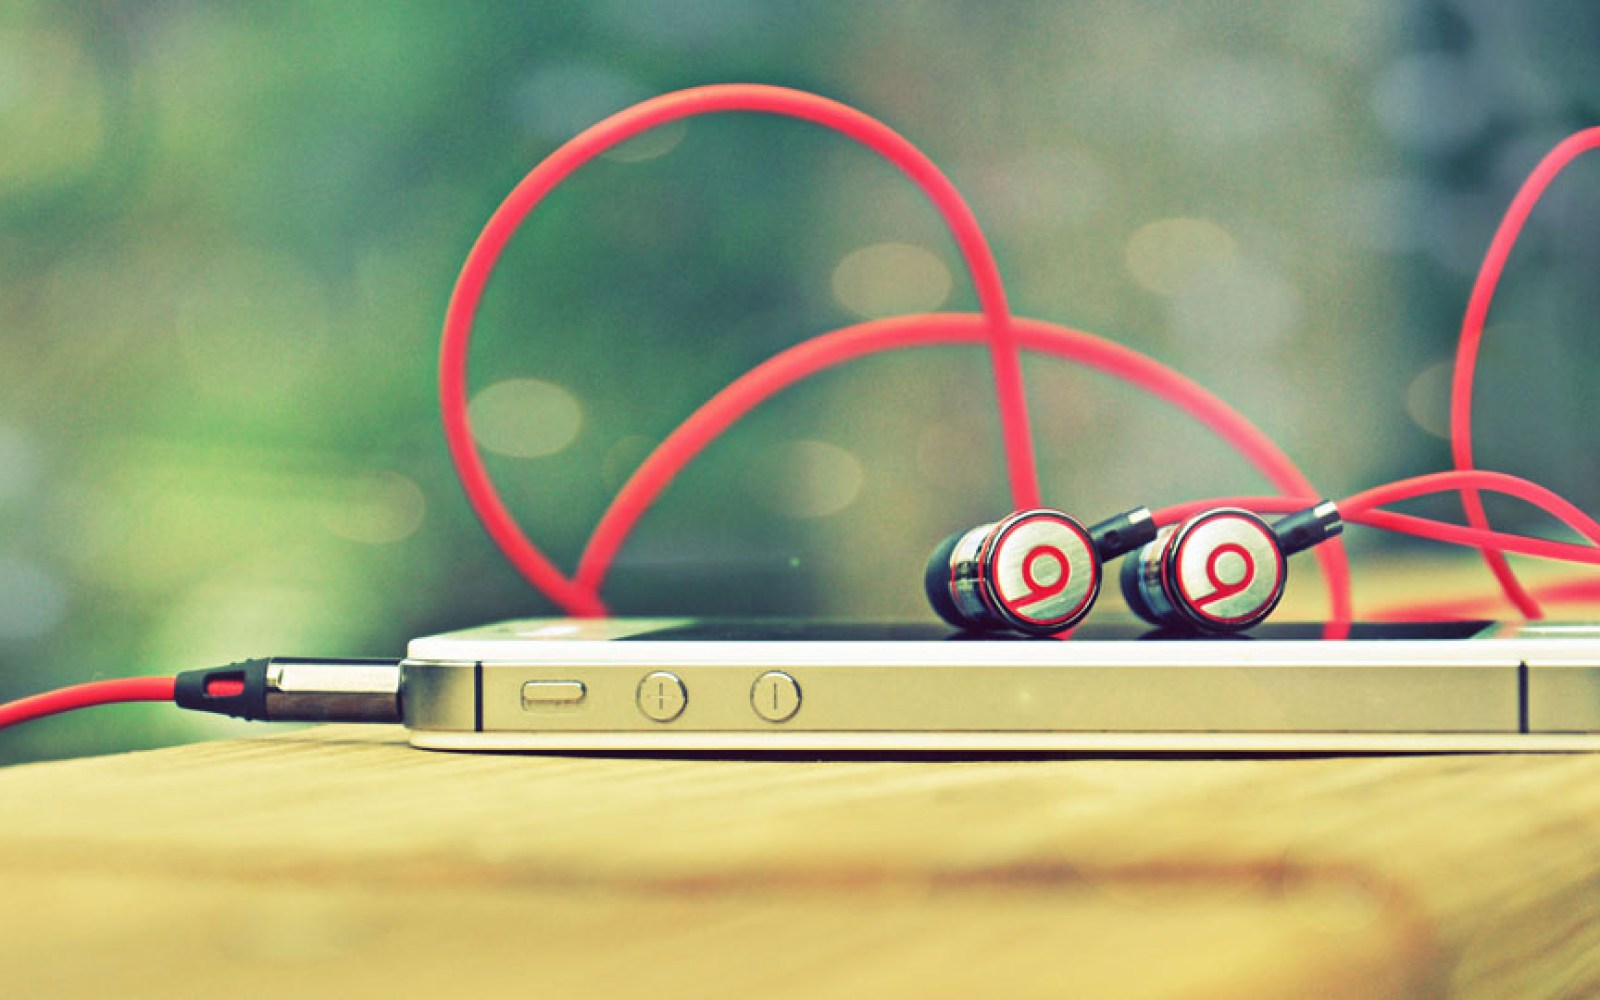 """Beats acquisition made Apple """"cooler"""" and more popular with students, says survey"""